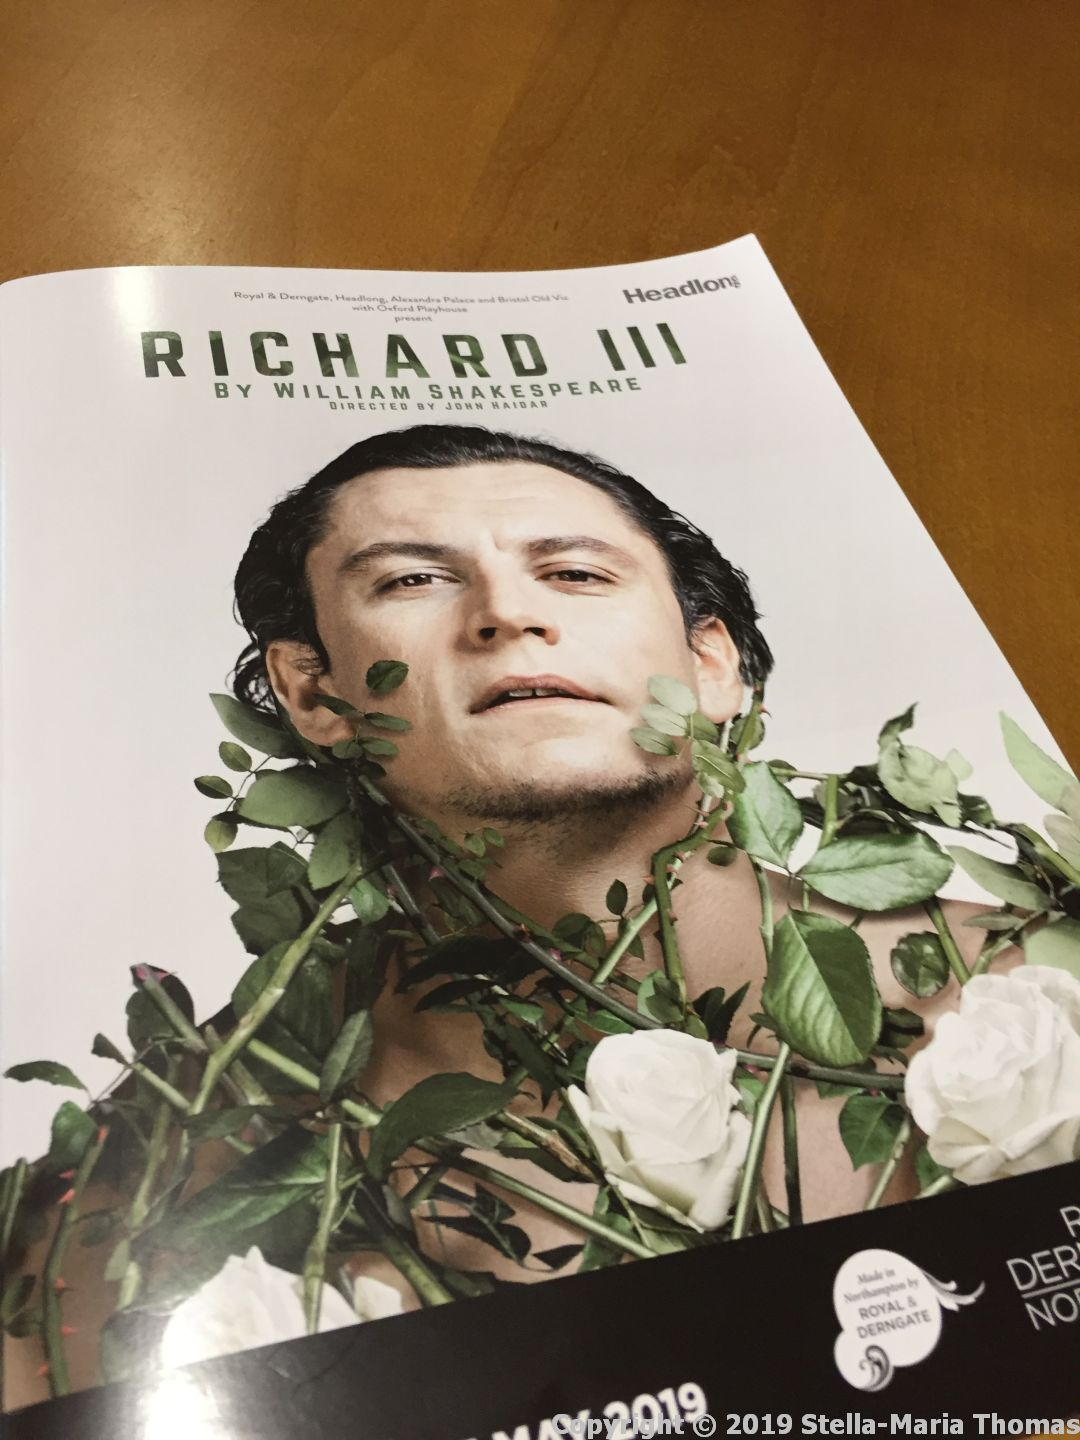 Theatre 2019 – Richard III, Royal and Derngate, Northampton